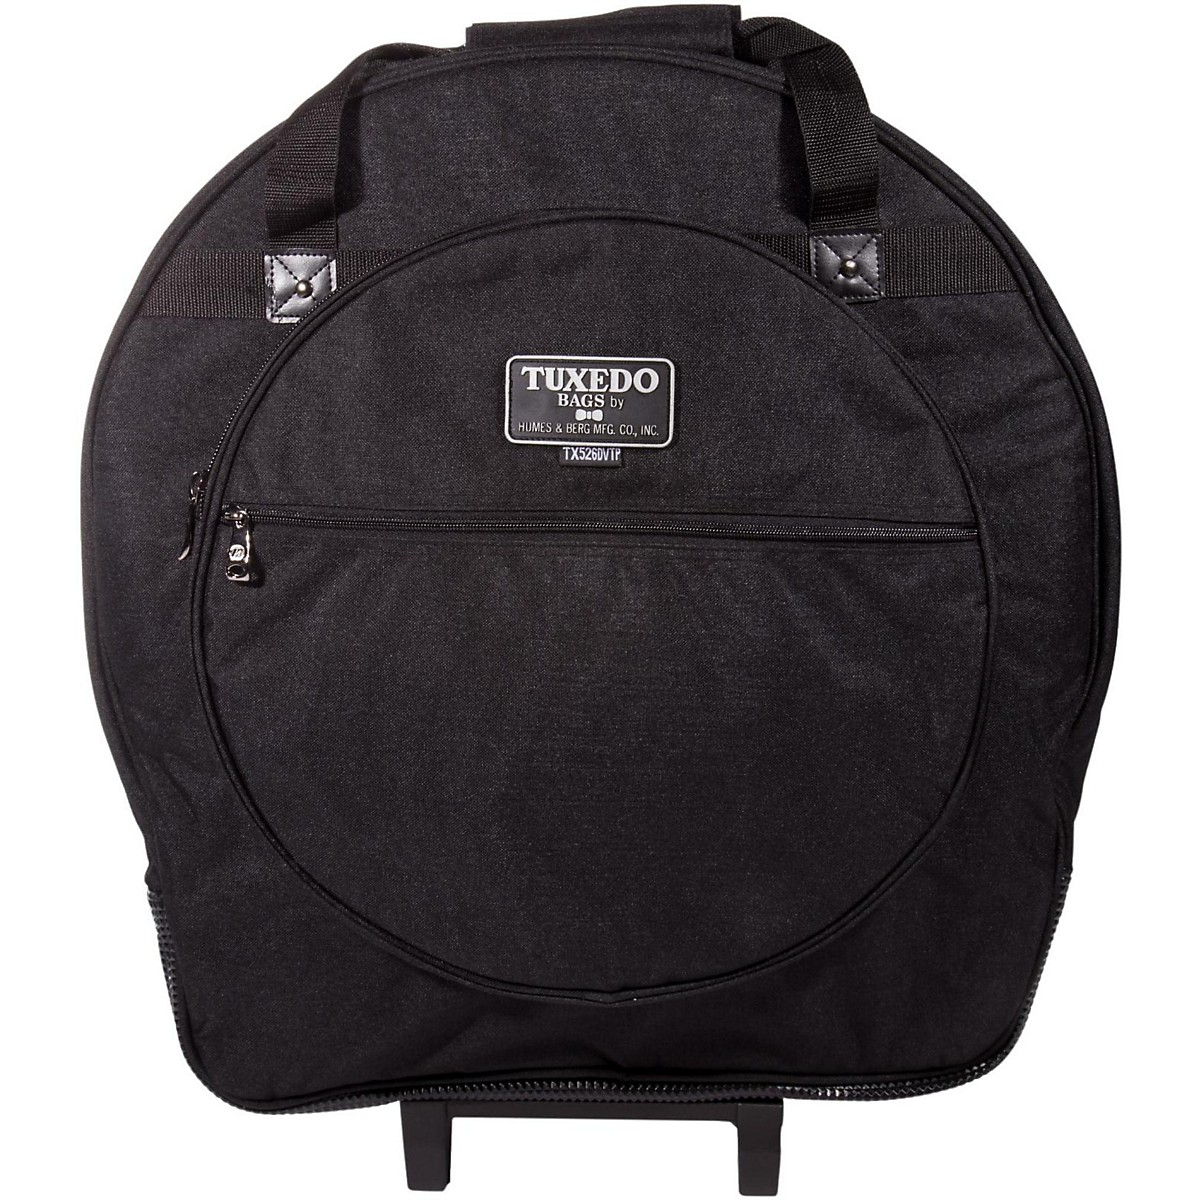 Humes & Berg Tuxedo Tilt-N-Pull Cymbal Bag with Dividers